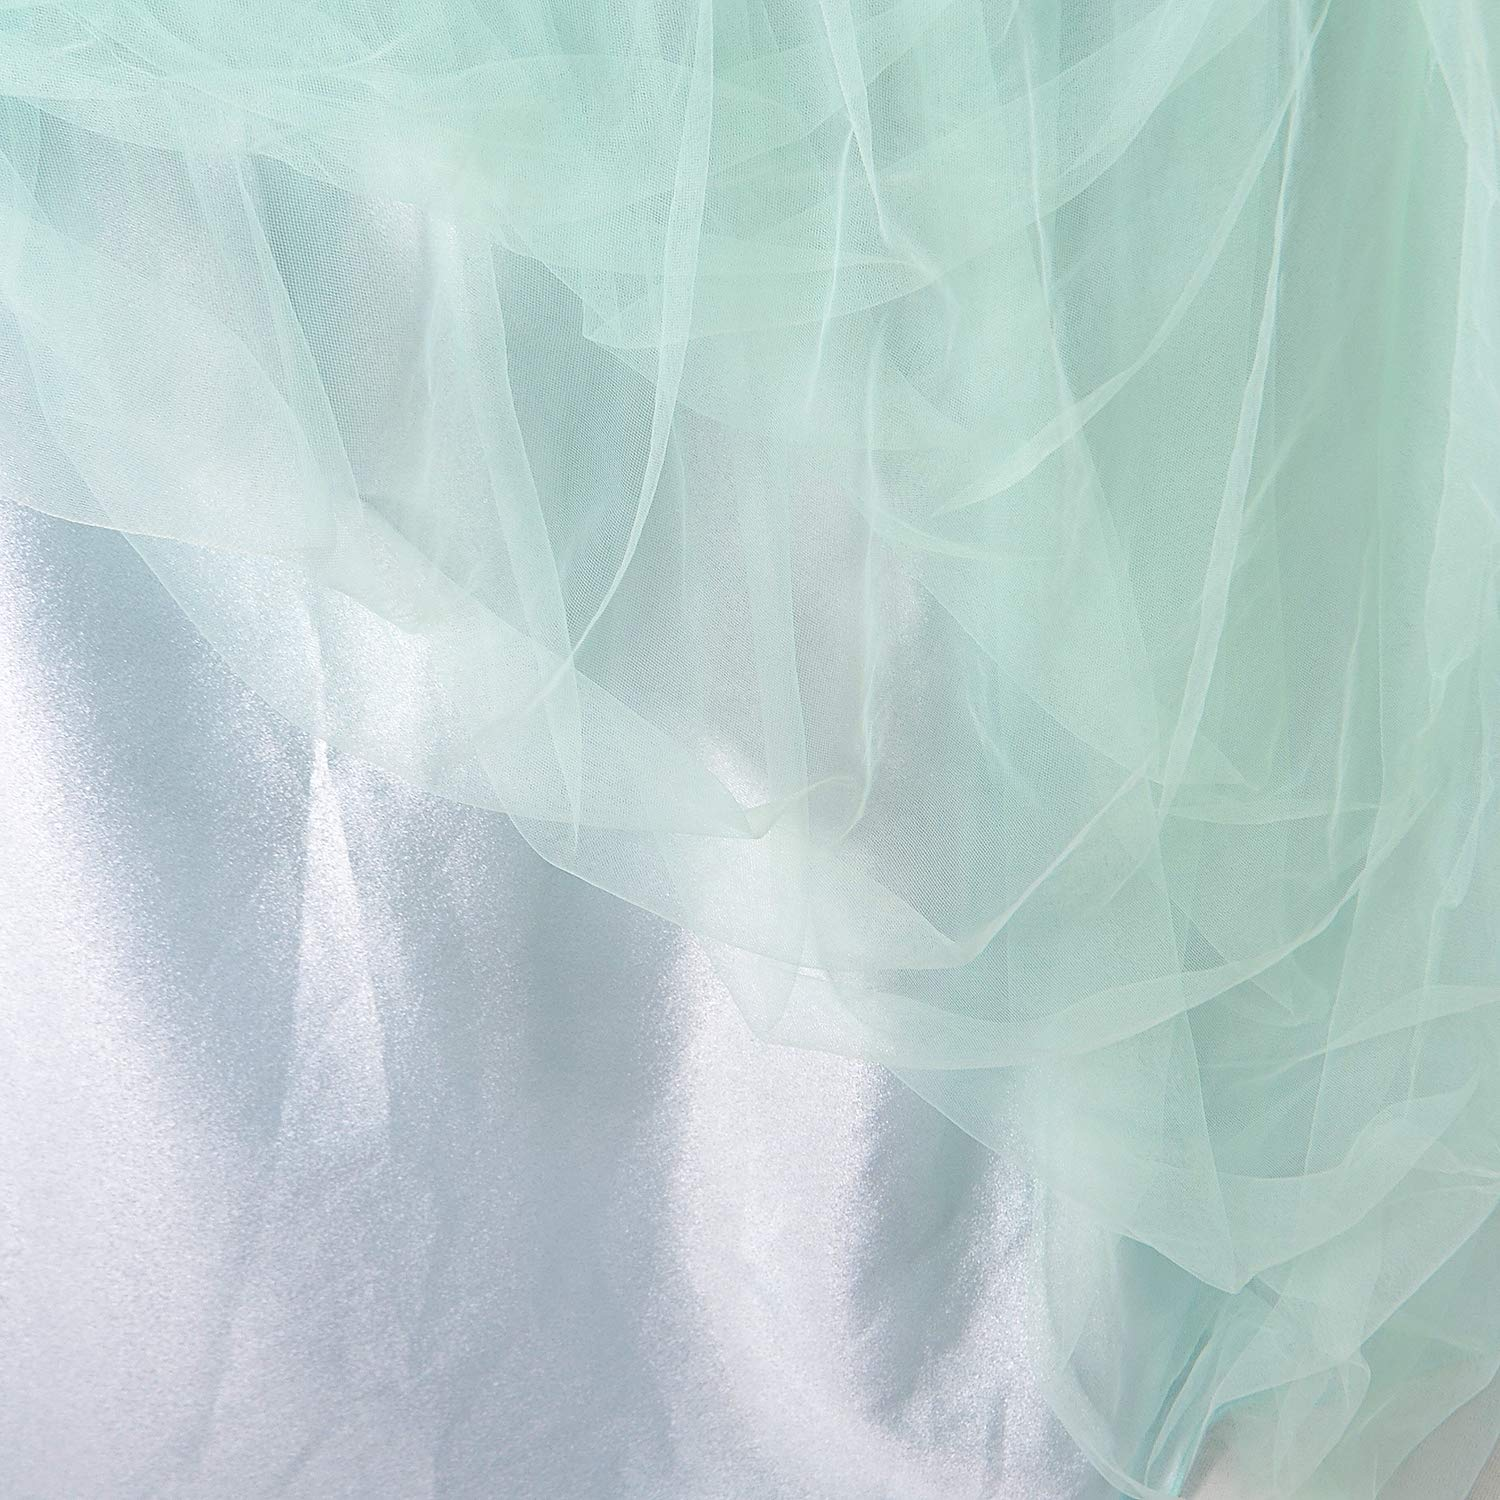 Suppromo High-end Gold Brim 3 Layer Mesh Fluffy Tutu Table Skirt Tulle Tableware for Party,Wedding,Birthday Party&Home Decoration (L14(ft) H 30in, Mint Green)